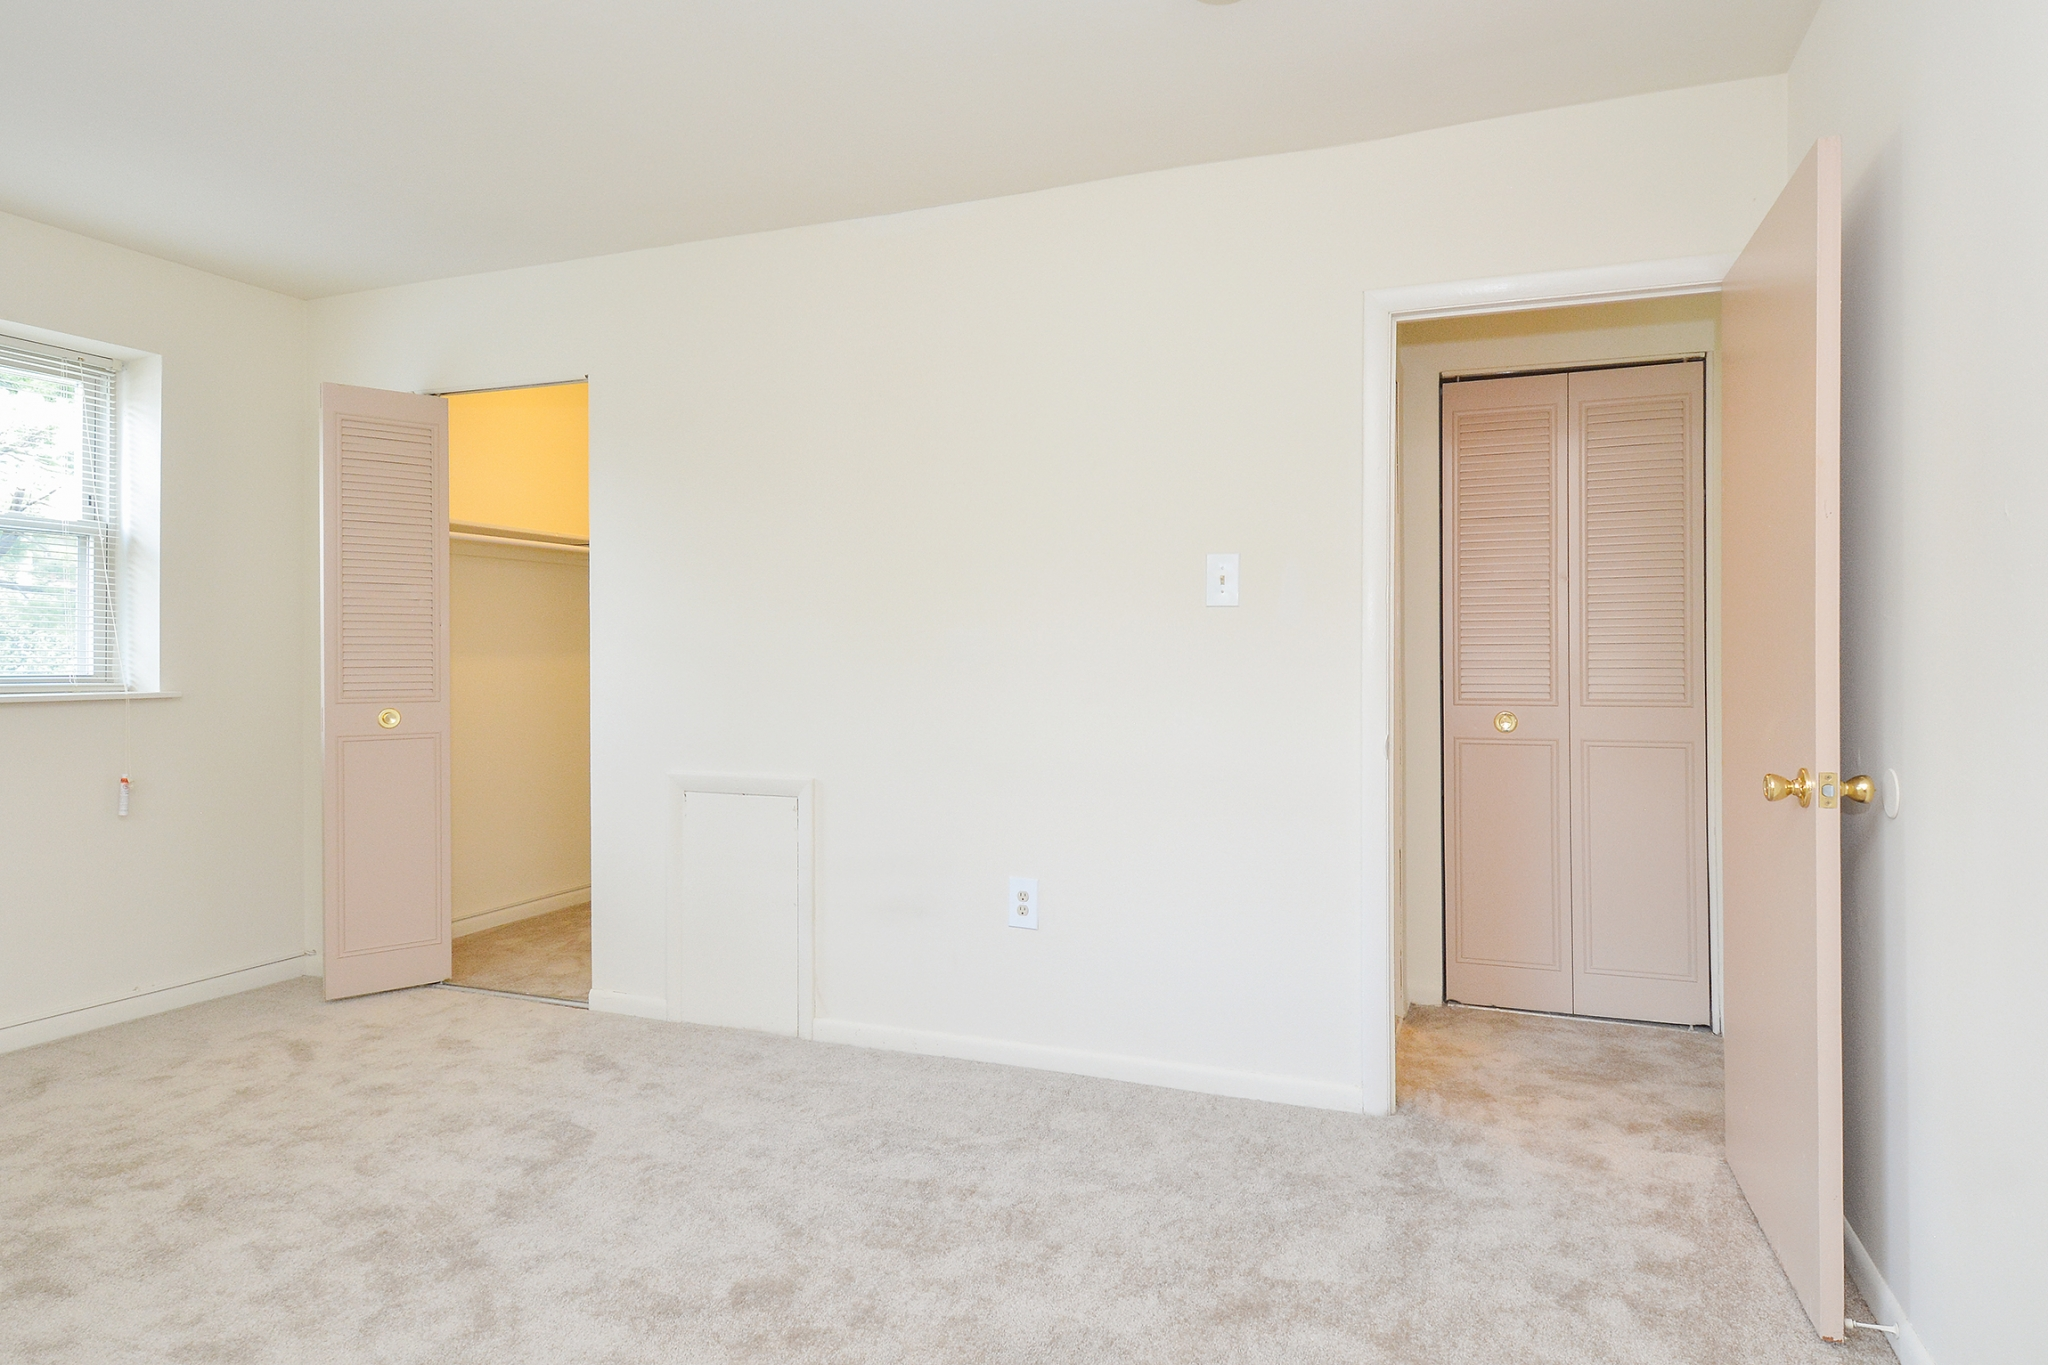 Newport Village Sample Bedroom with Closet Space | Levittown PA Apartments